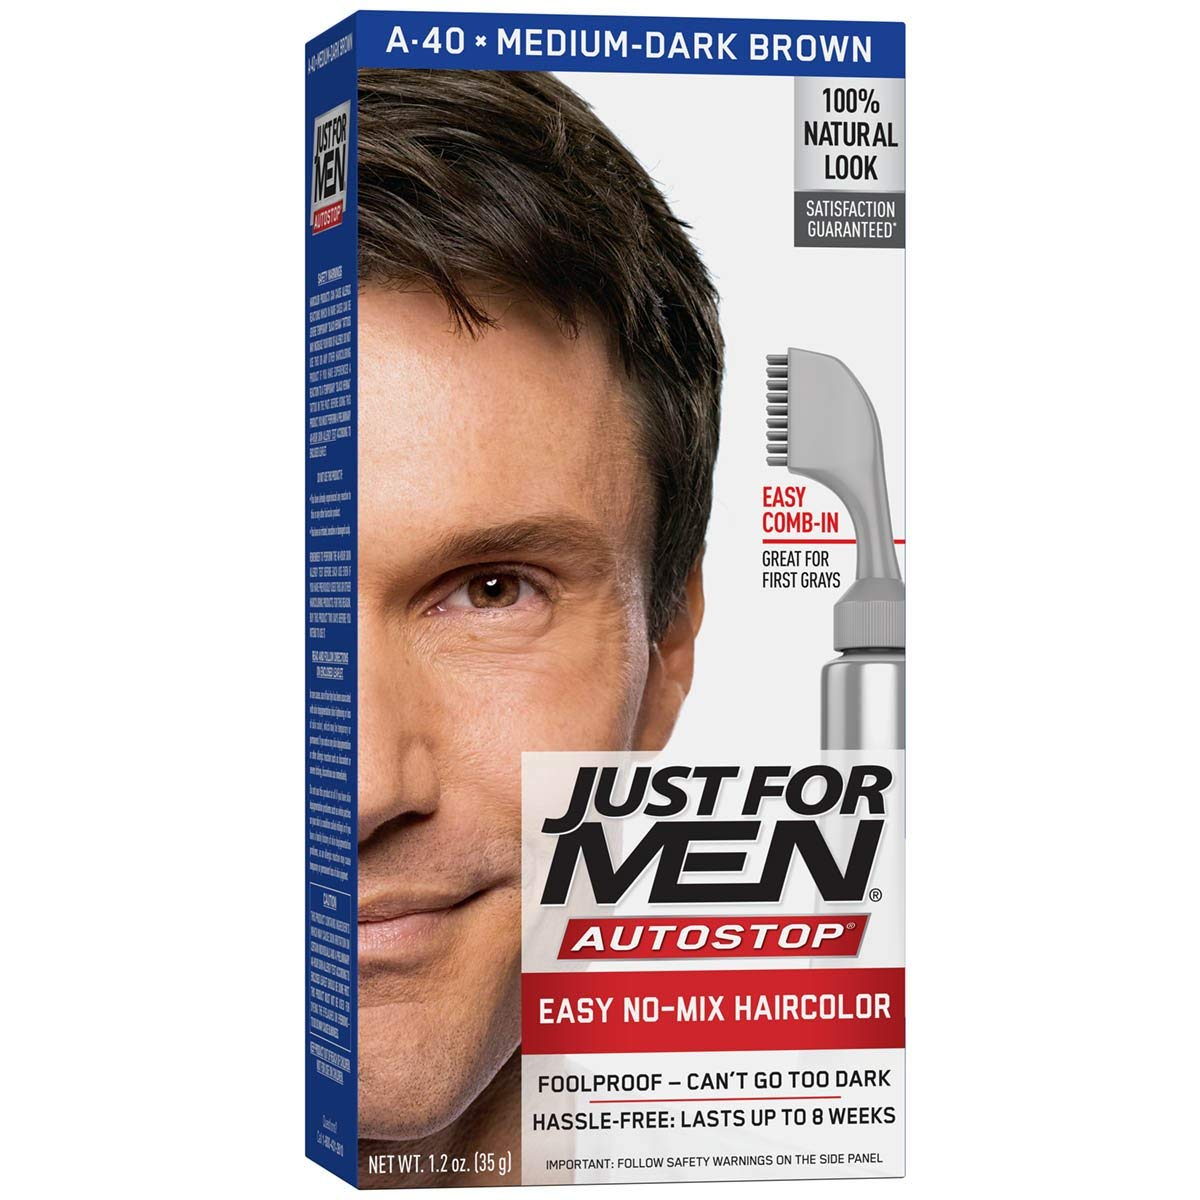 Just For Men AutoStop Men's Hair Color, Medium-Dark Brown